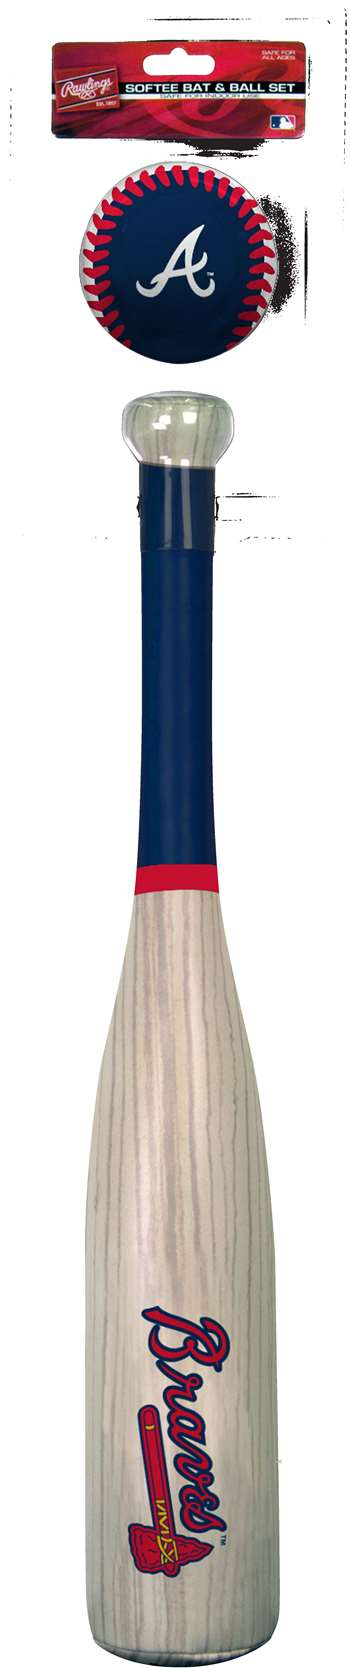 MLB Atlanta Braves Grand Slam Softee Bat and Ball Set (Wood Grain)